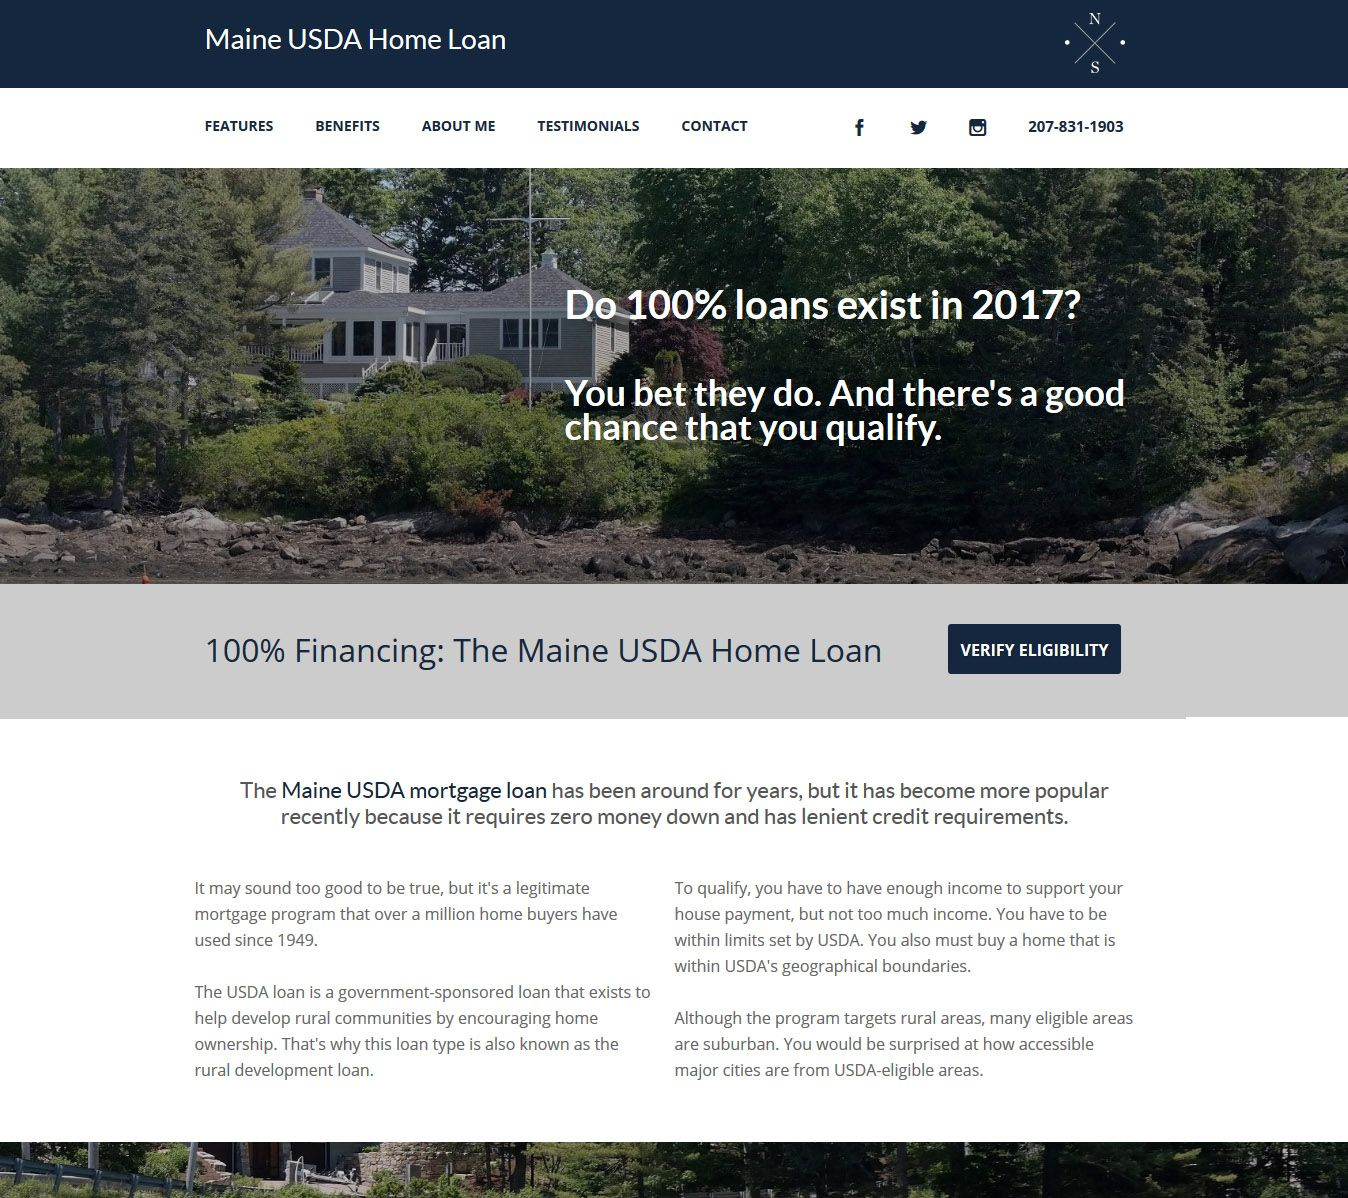 Maine USDA Home Loan